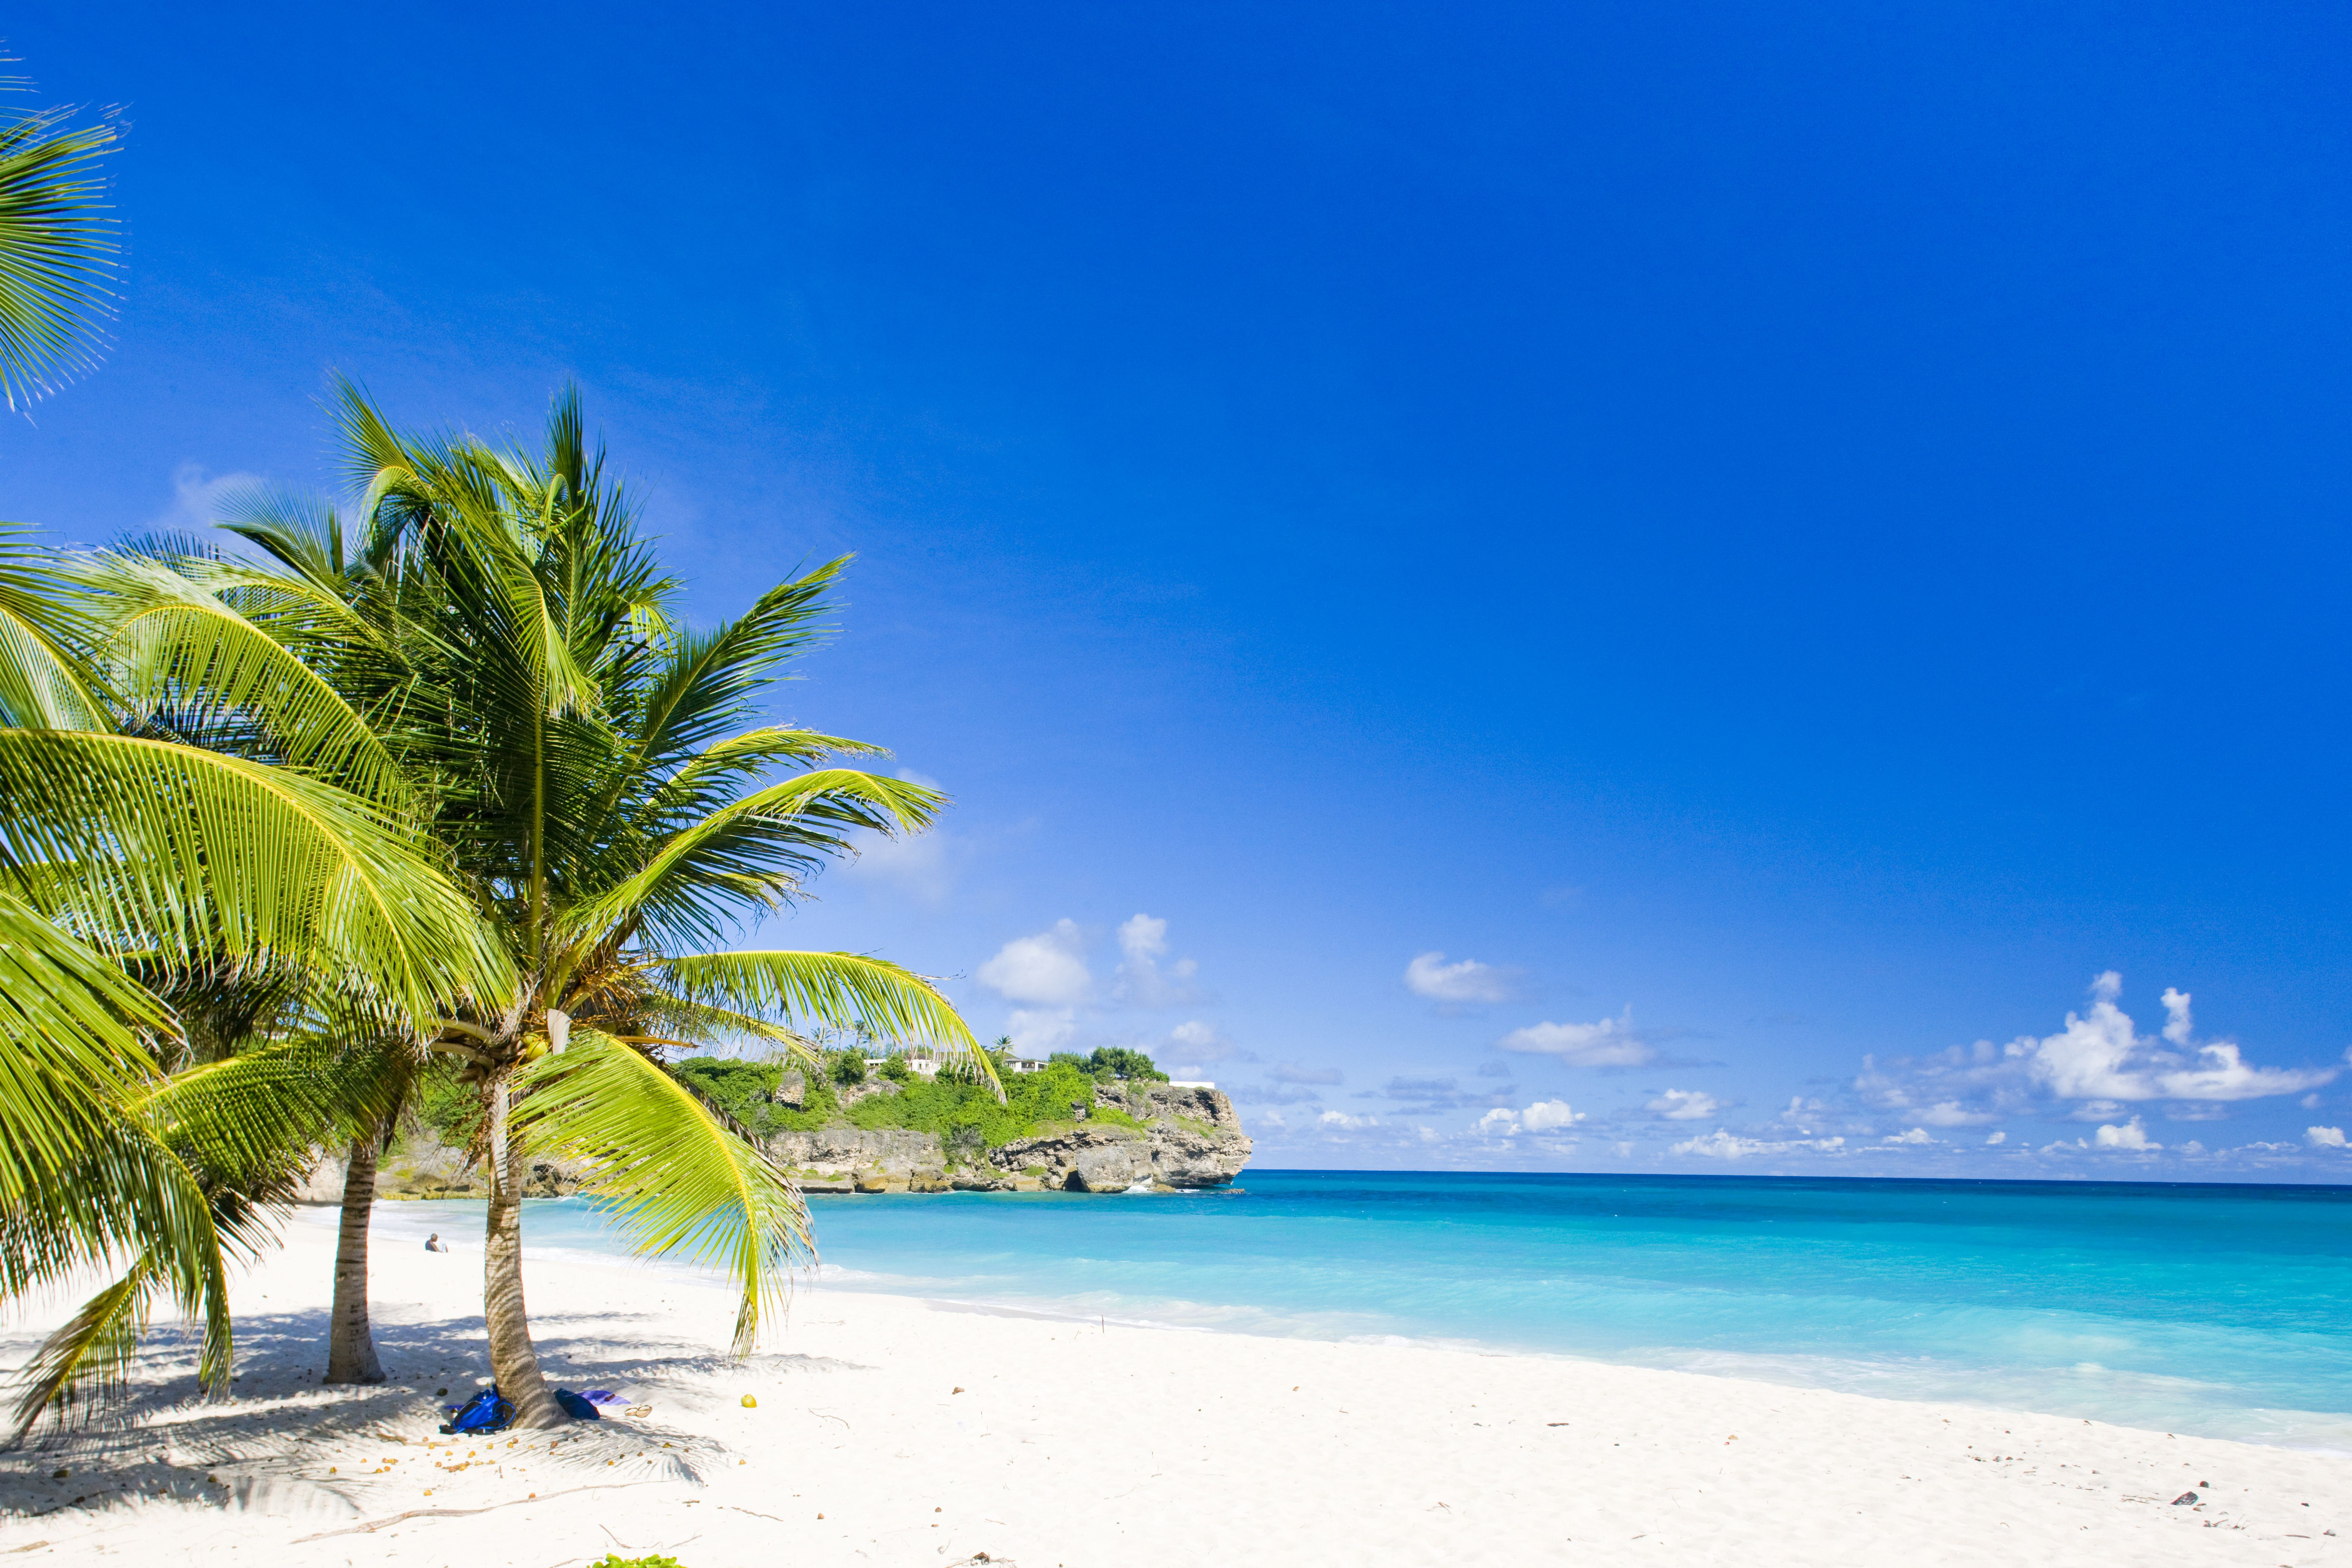 Foul Bay Barbados We Can Send Money Usd To And From But Cannot Accept New Registrations Here